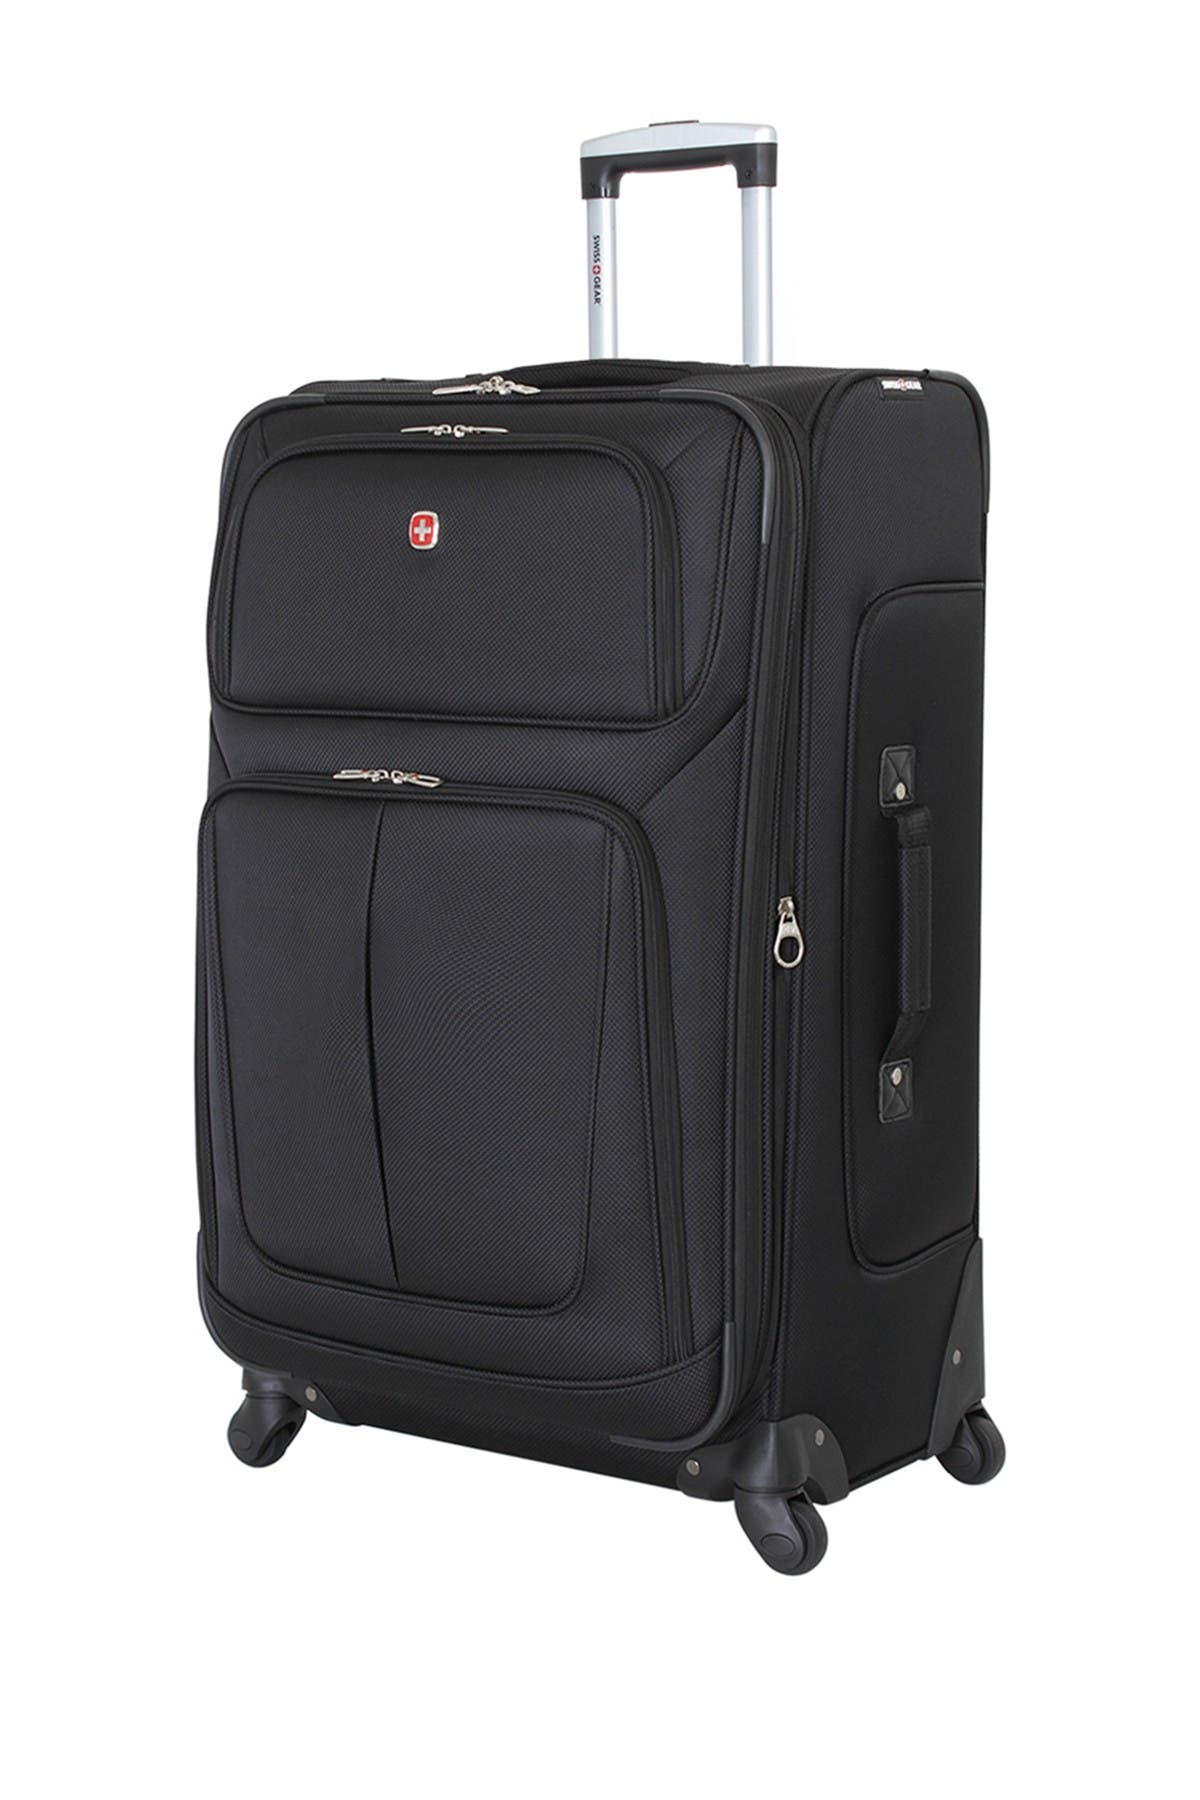 "Image of SwissGear 29"" Spinner Suitcase"